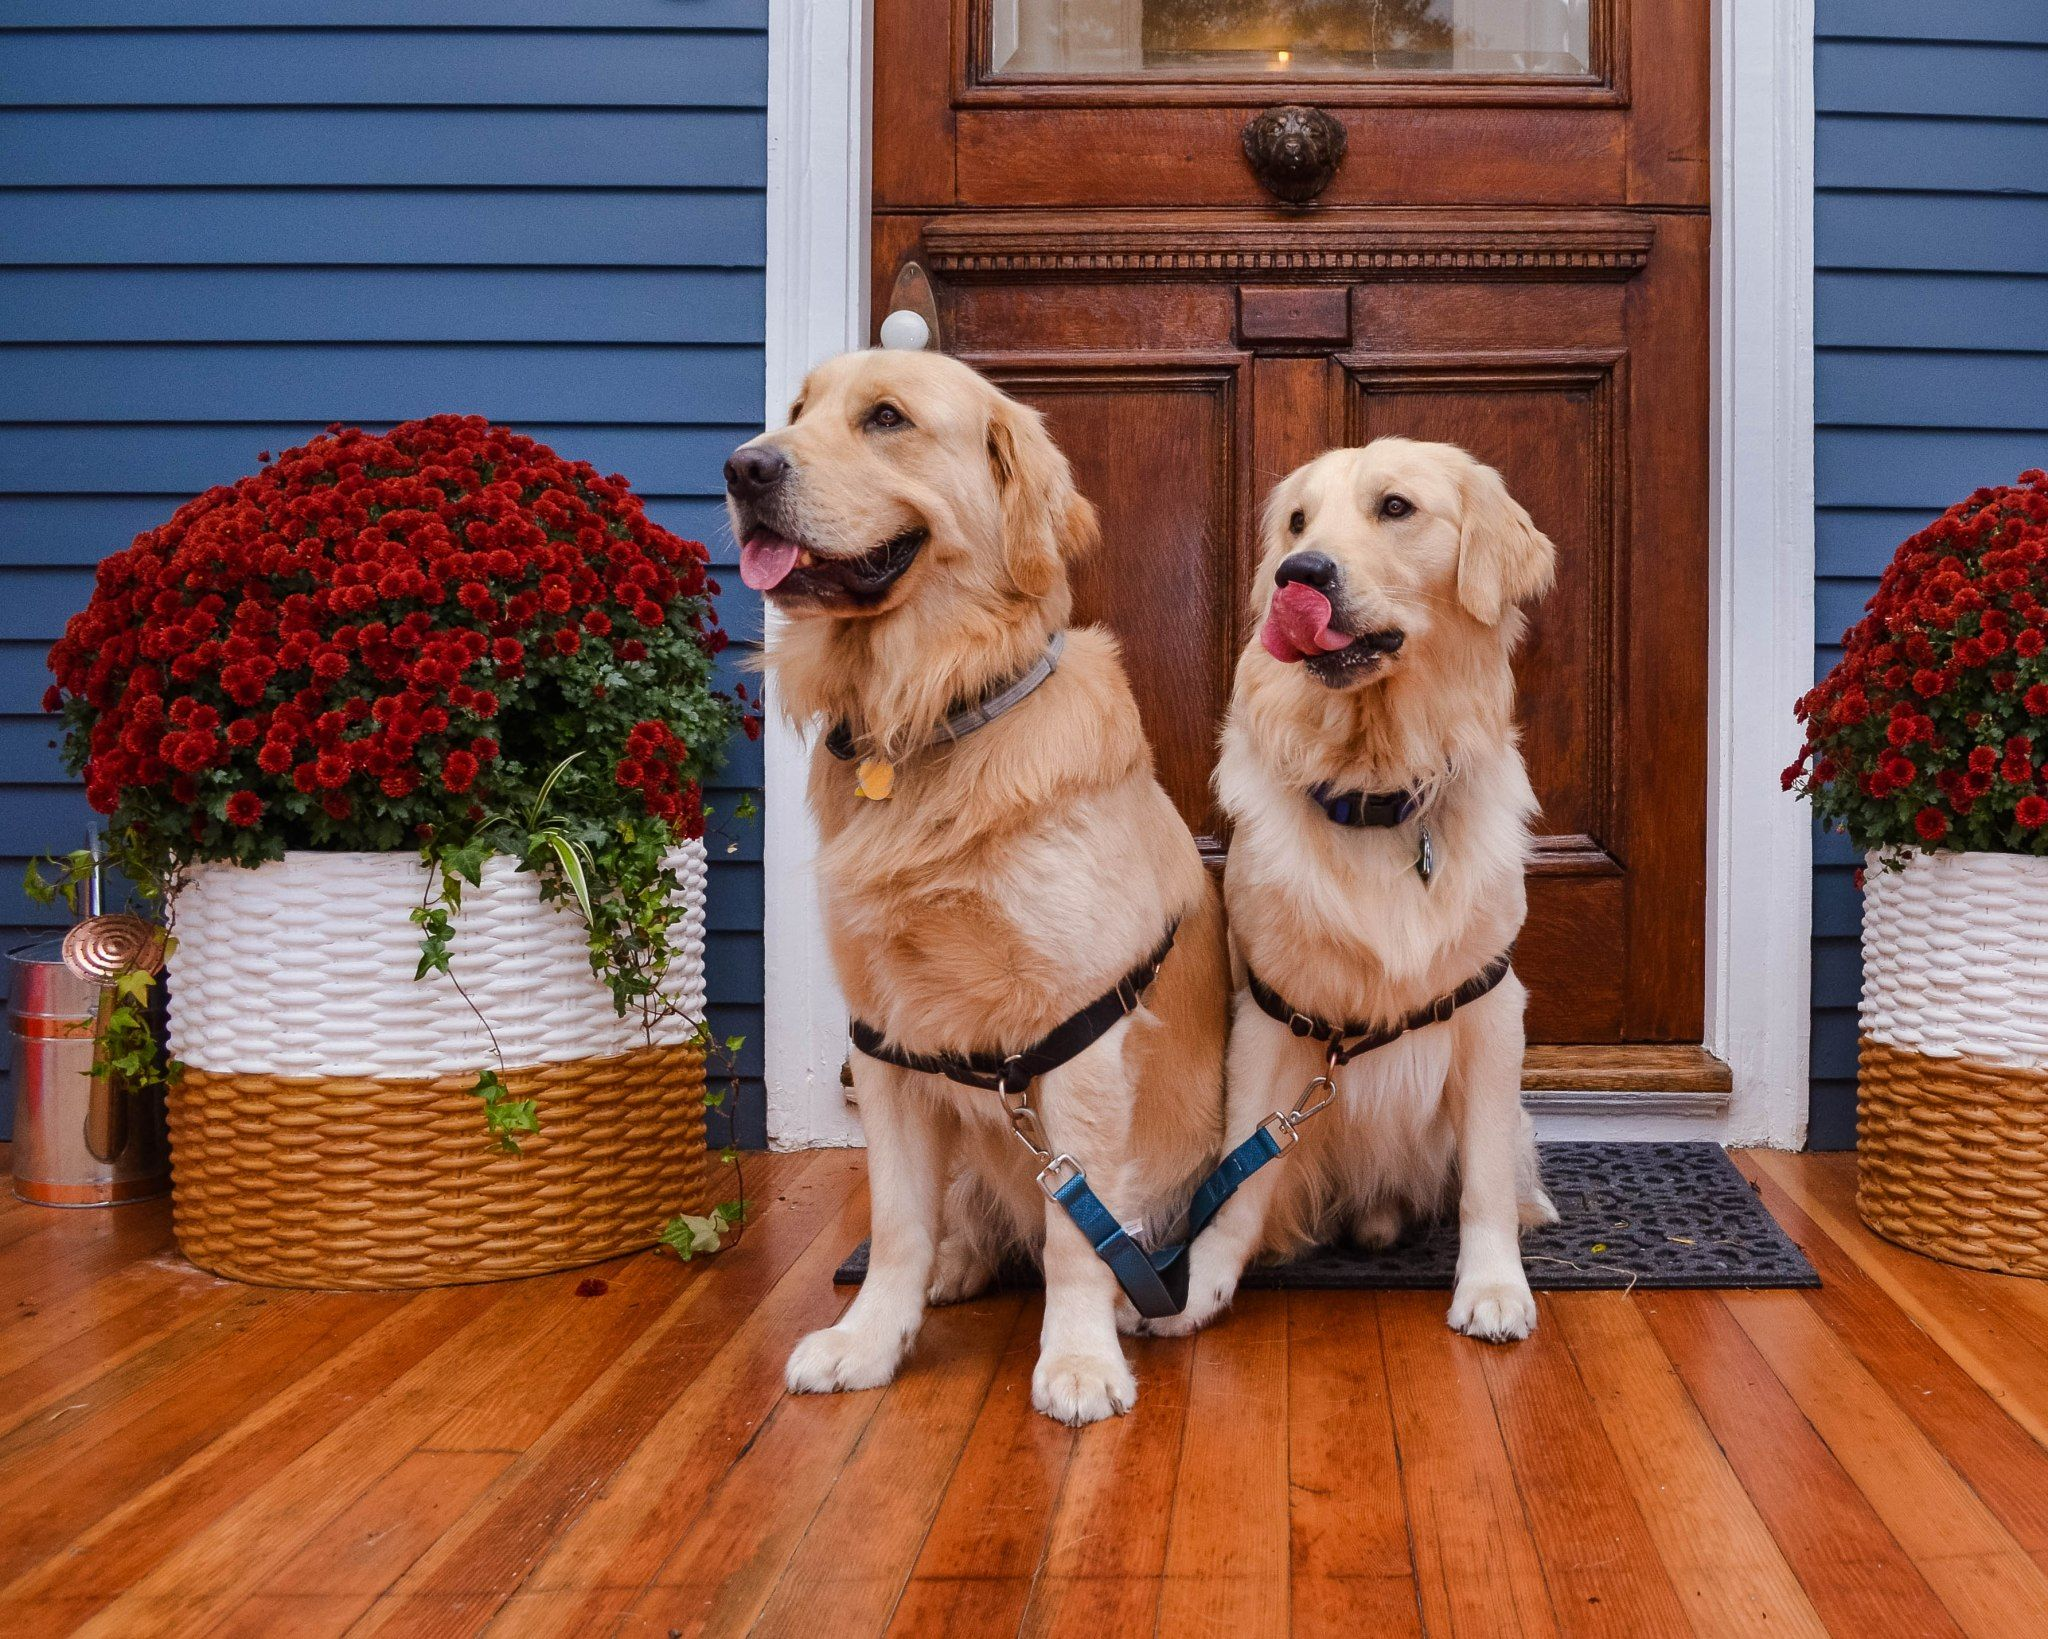 Paws On Pelham – Joyful Goldens New England Dog Friendly Inn Paws on Pelham  in Newport, Rhode Island. These tw… in 2020 | Dog friends, Dog friendly  hotels, Golden retriever